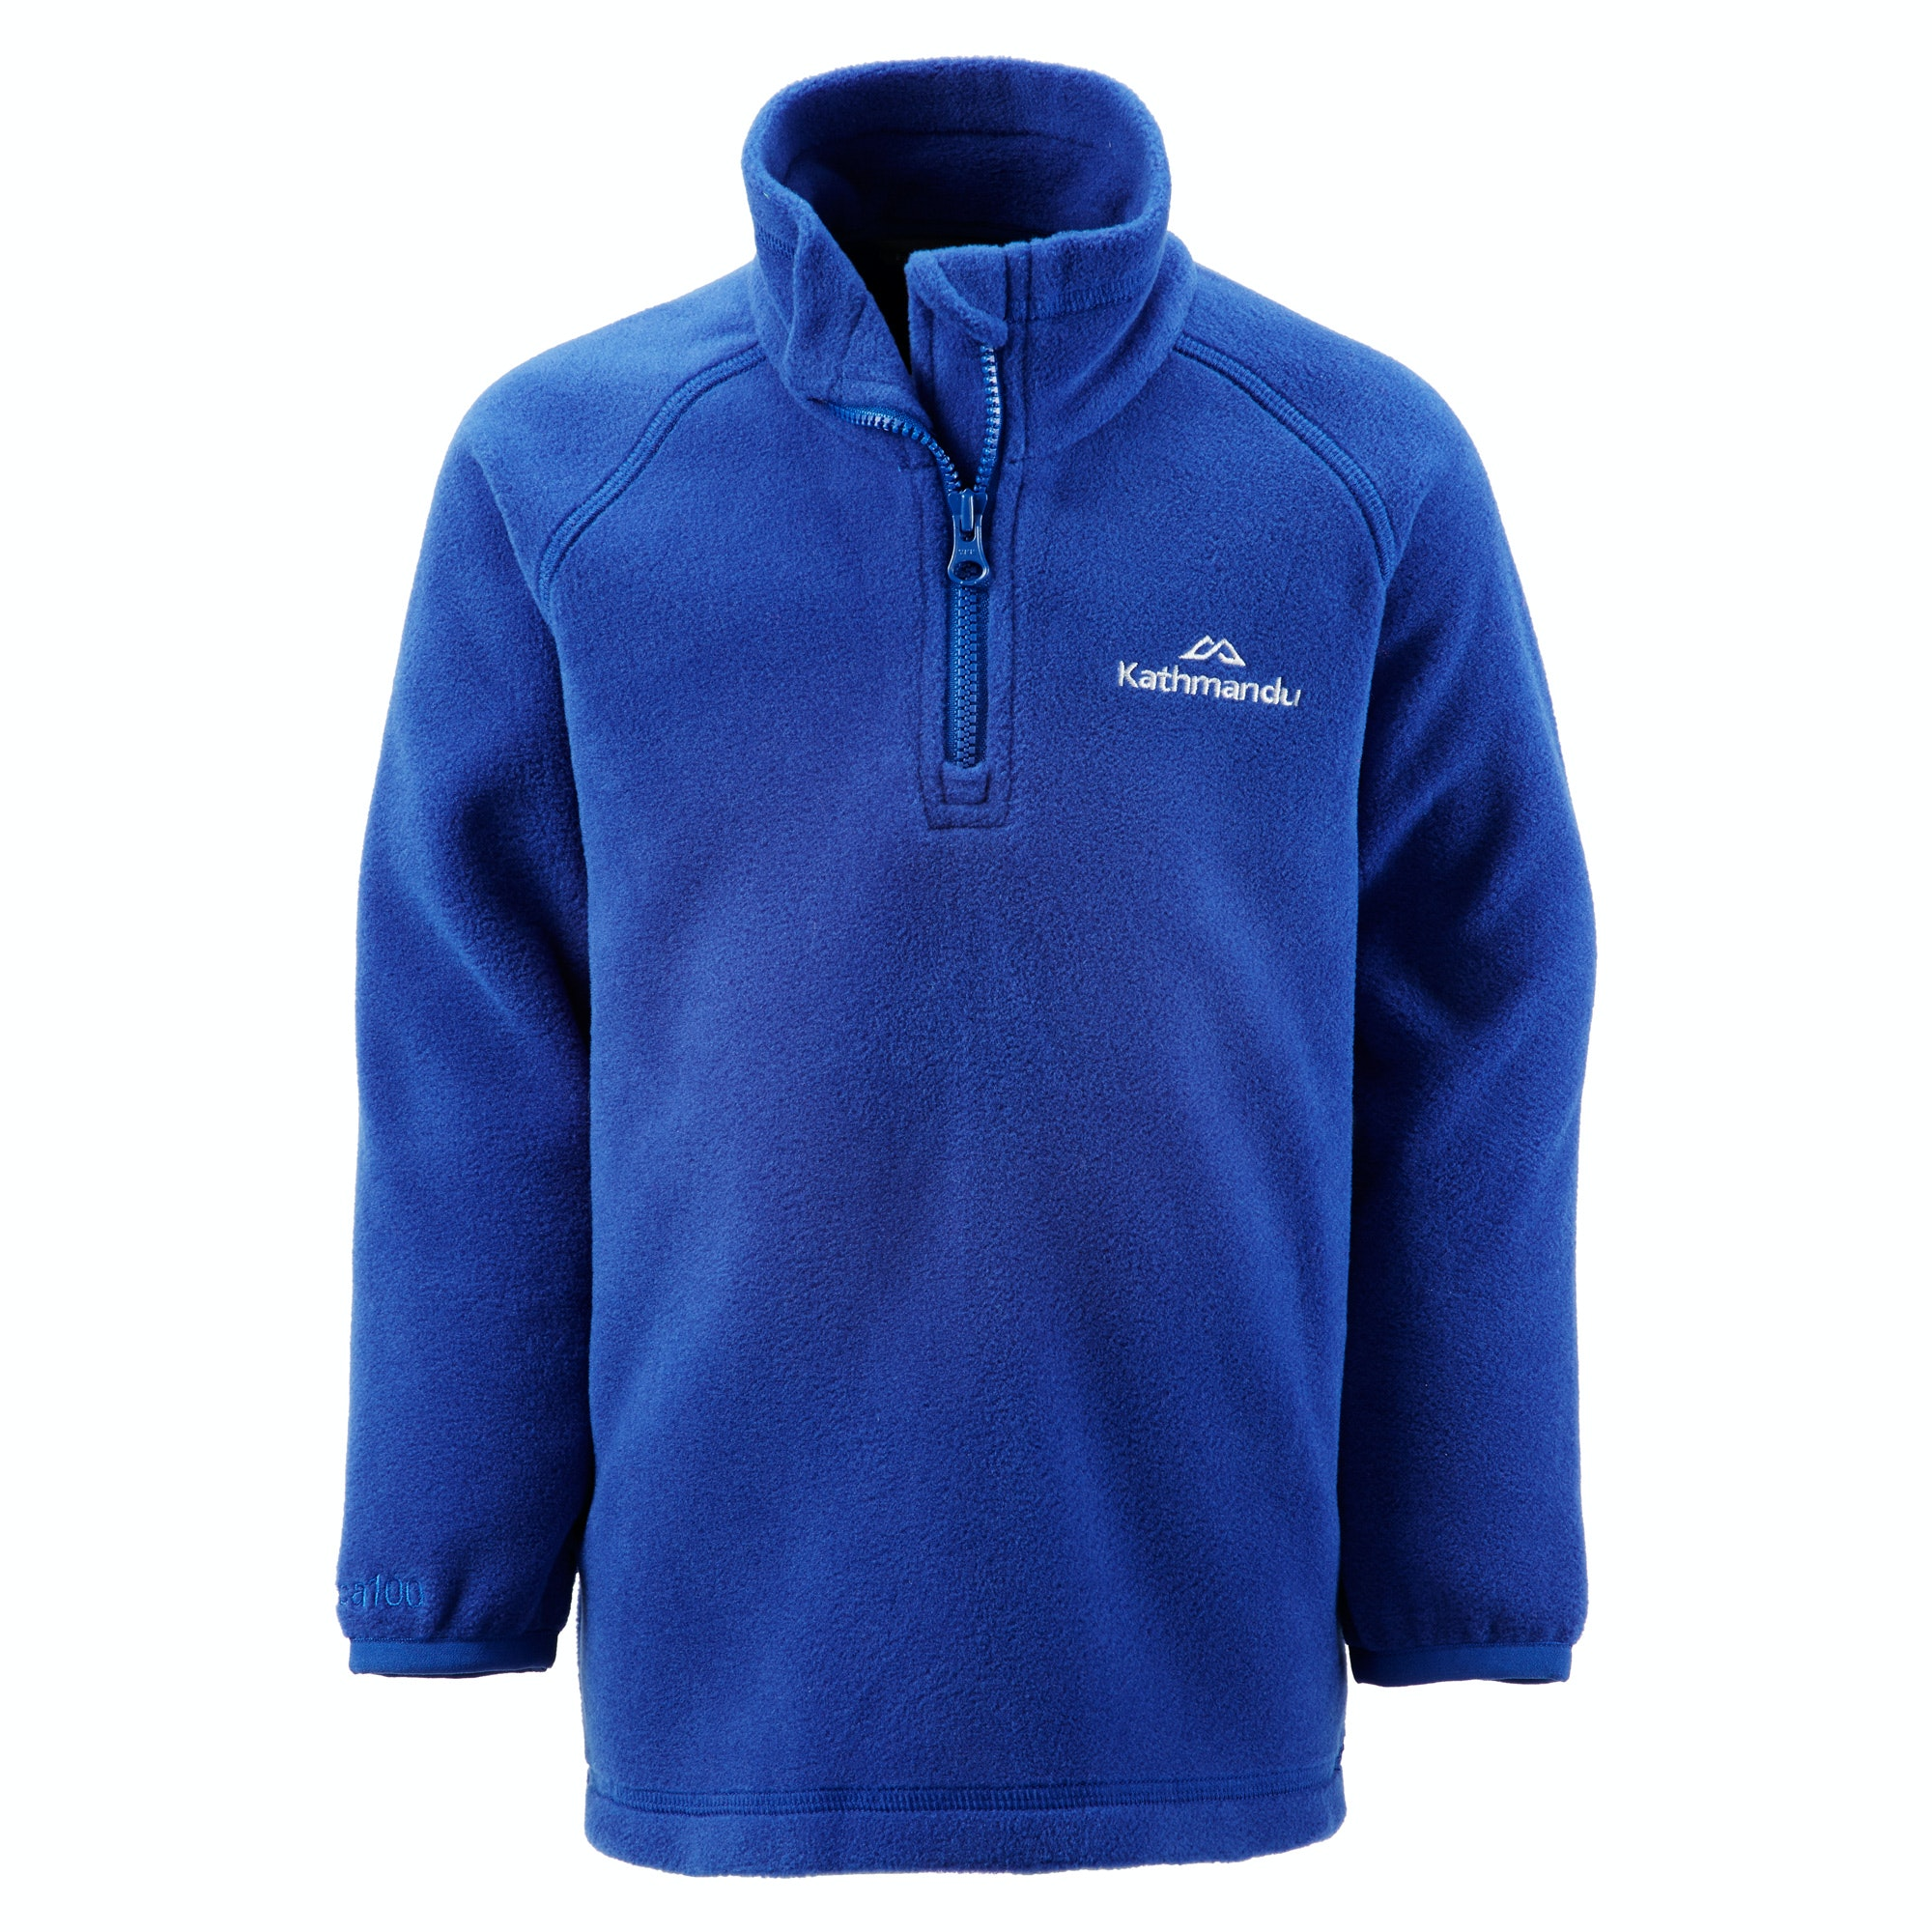 View more of the Ridge Kids' Pullover